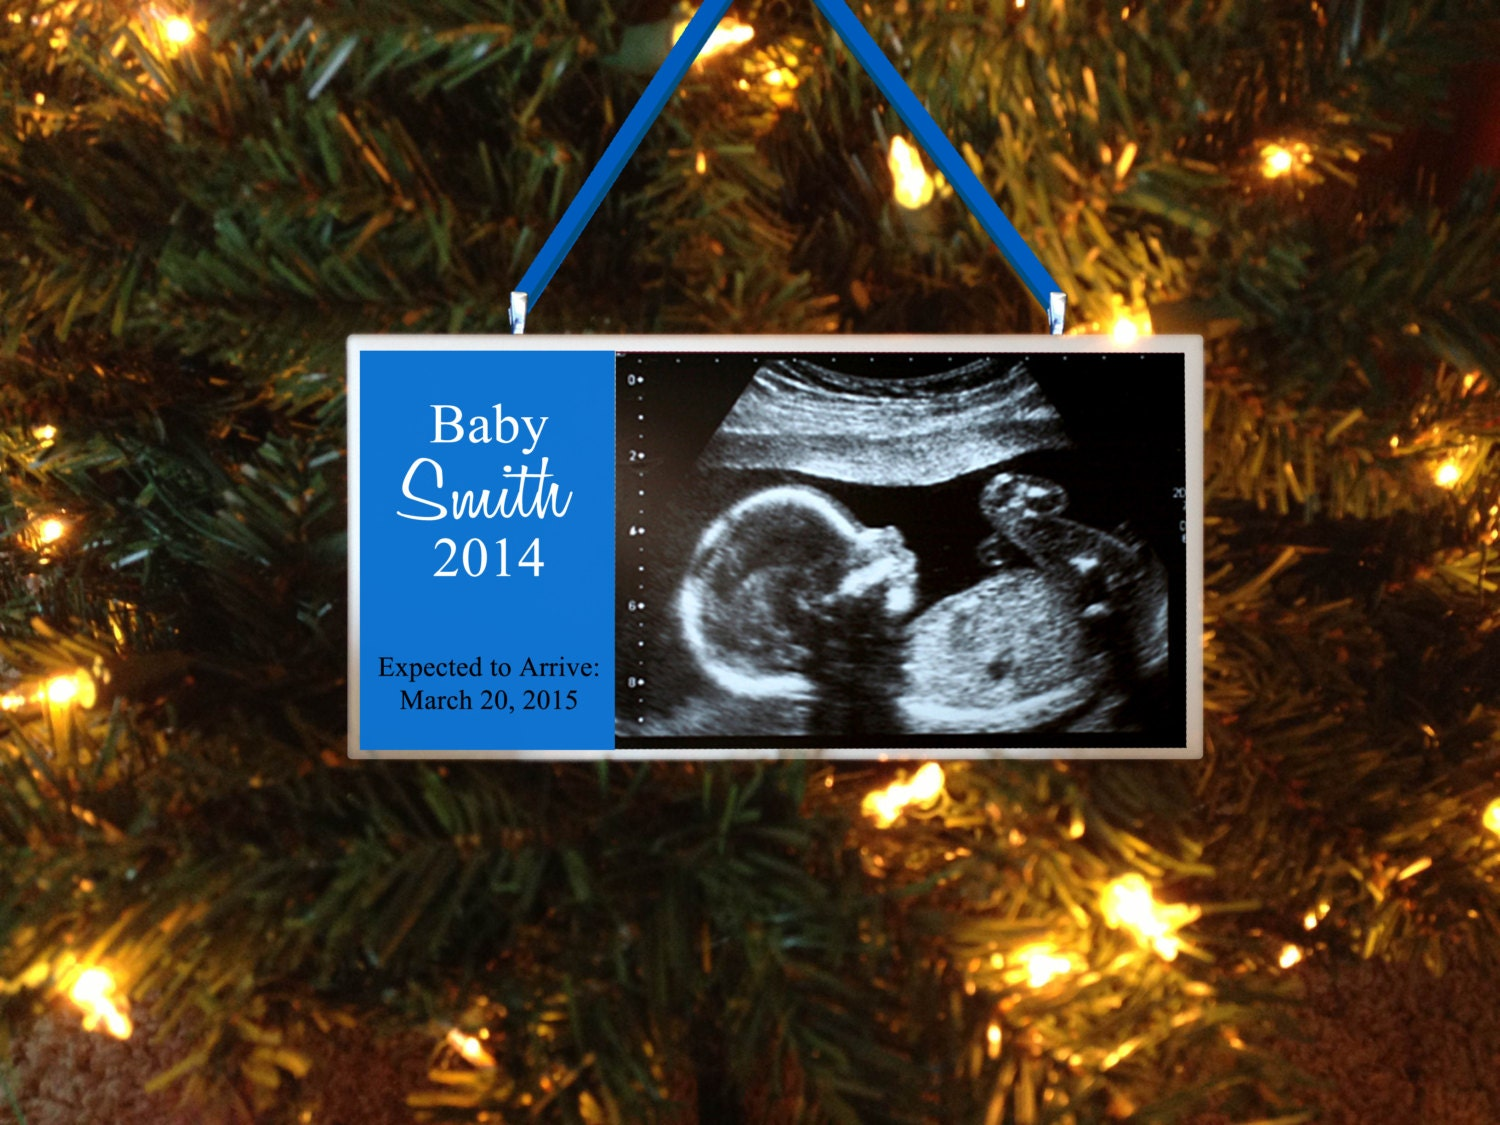 New baby christmas ornament -  Zoom